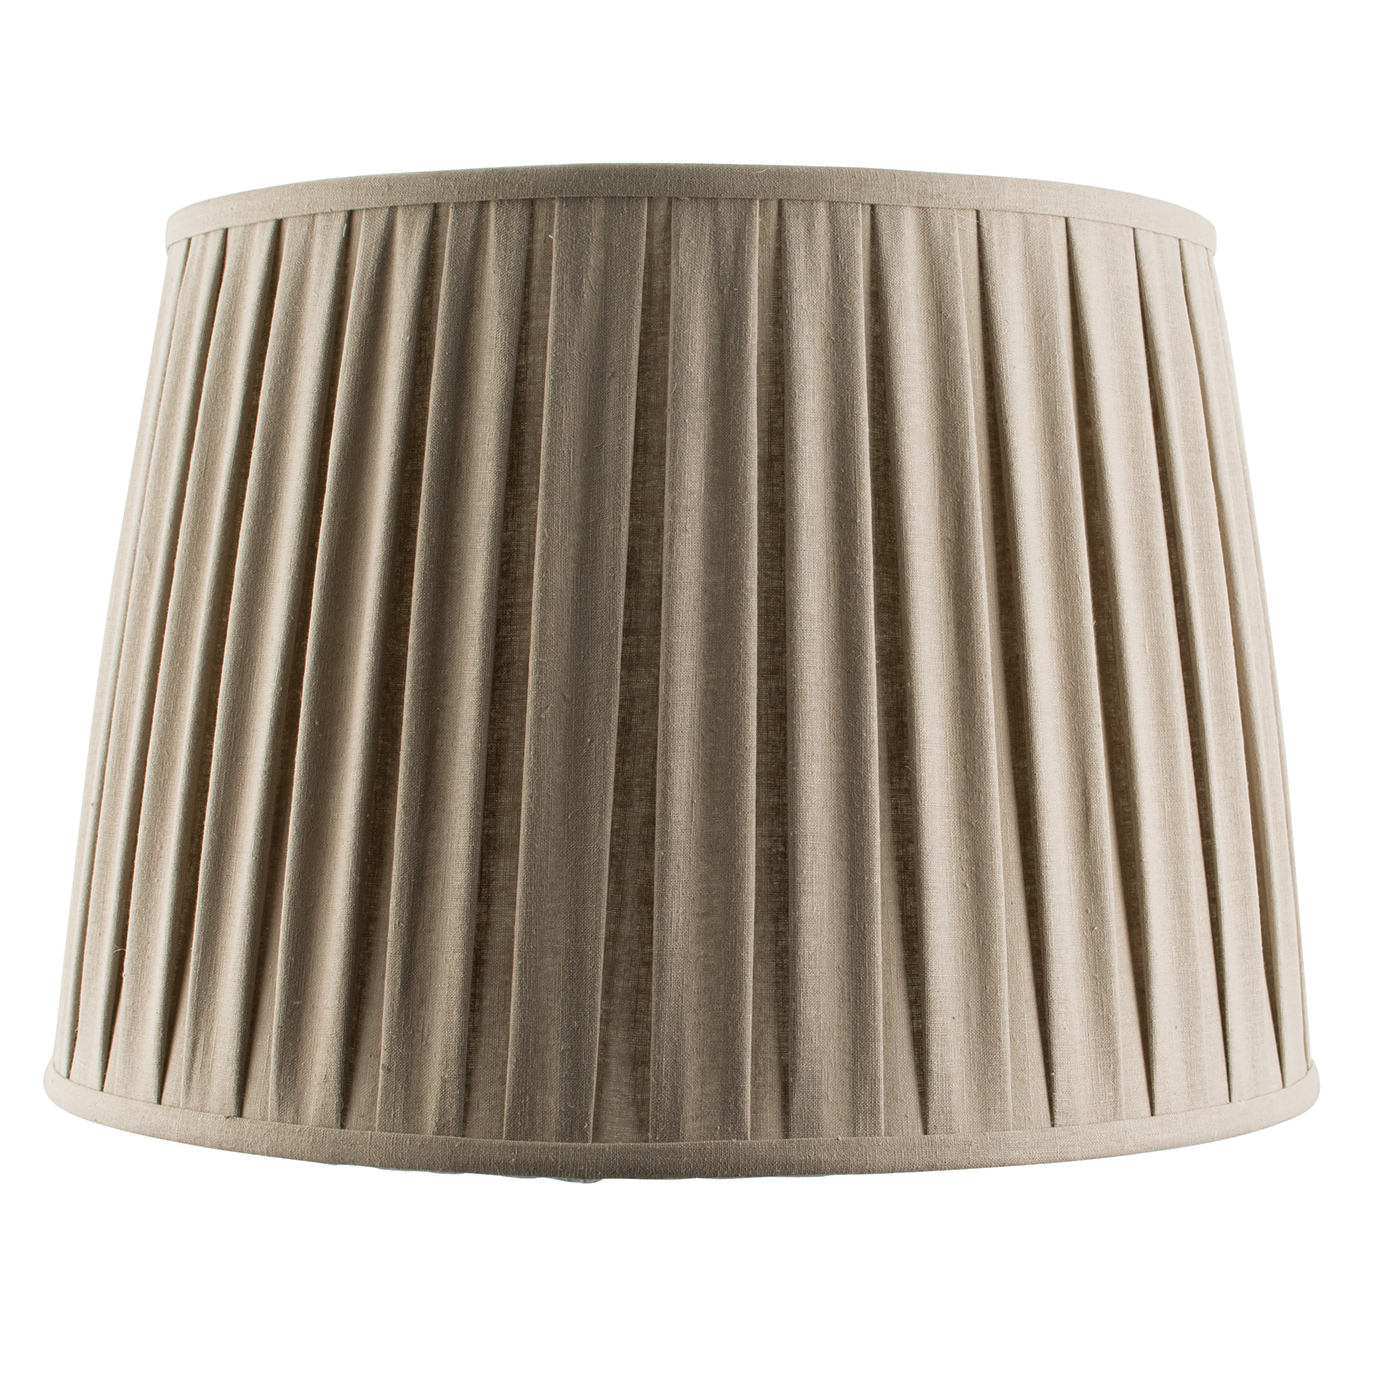 Endon 61357 Cleo Shade 18in Fxd Gimbal